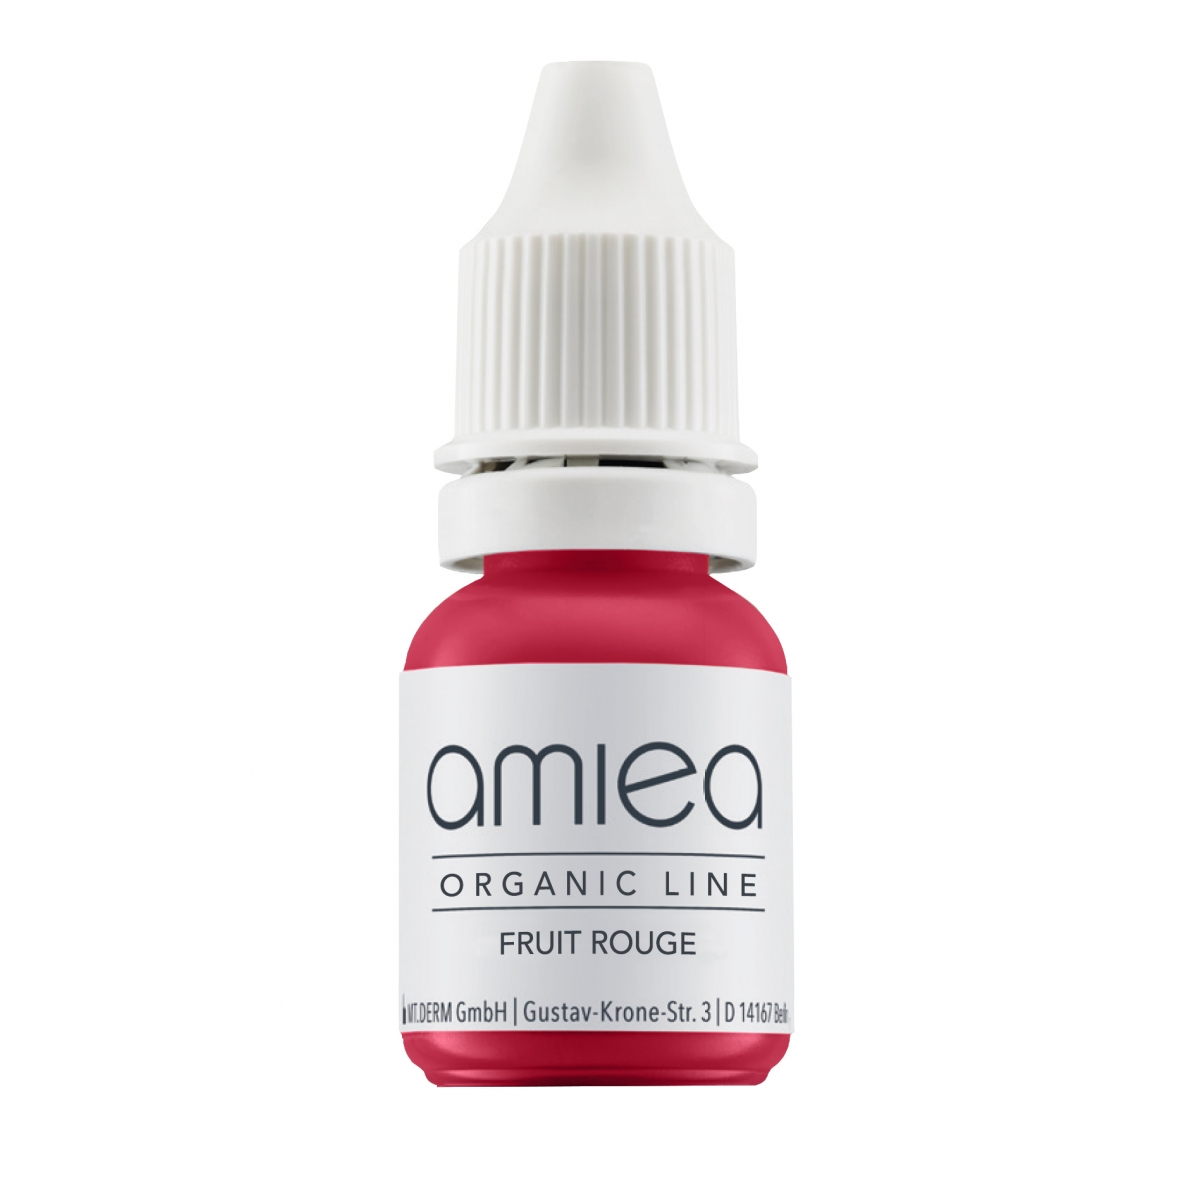 ORGANIC LINE (5ml)  - PIGMENT FRUIT ROUGE ORGANICLINE AMIEA (5 ml)